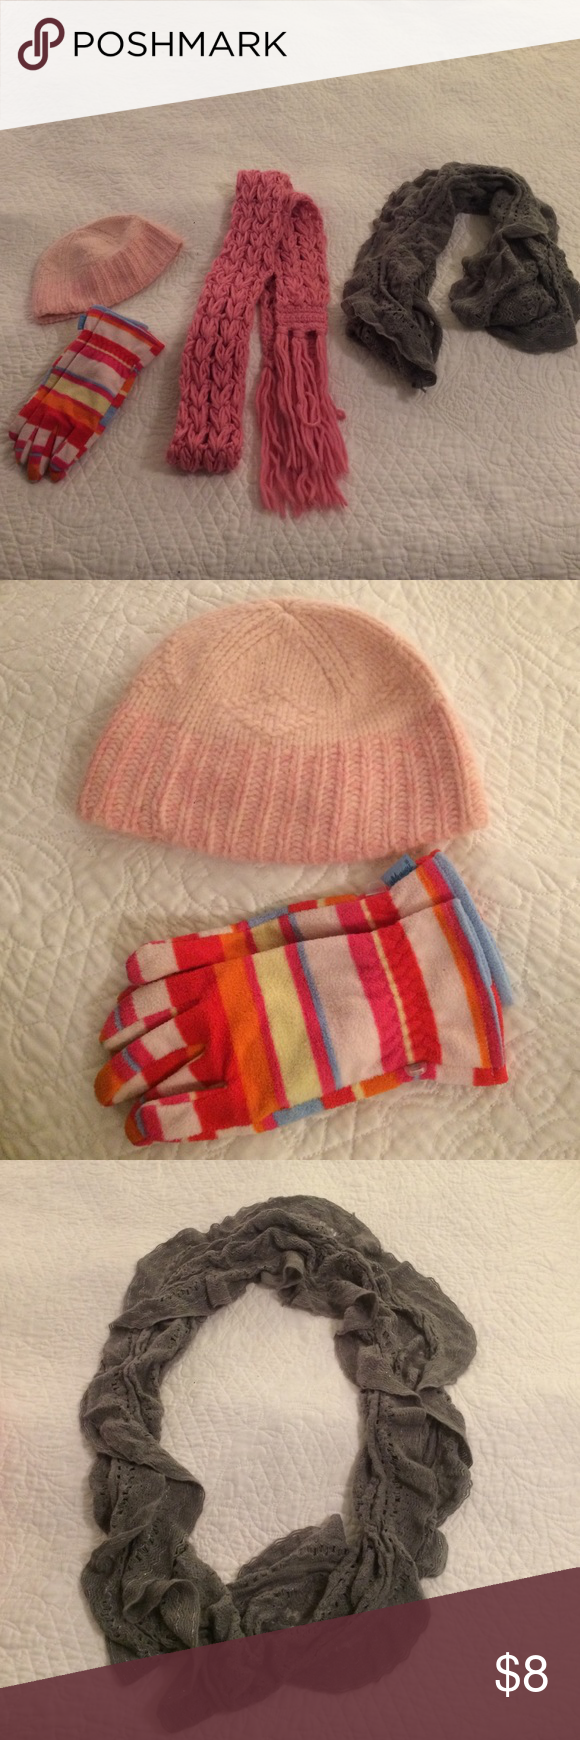 Set of 4 items!  2 scarves, 1 hat, 1 pair gloves! Women's American Eagle pink hat, Old Navy striped gloves (kids large, adult small).  Grey infinity scarf (never worn), and pink yarn scarf. American Eagle Outfitters Accessories Scarves & Wraps